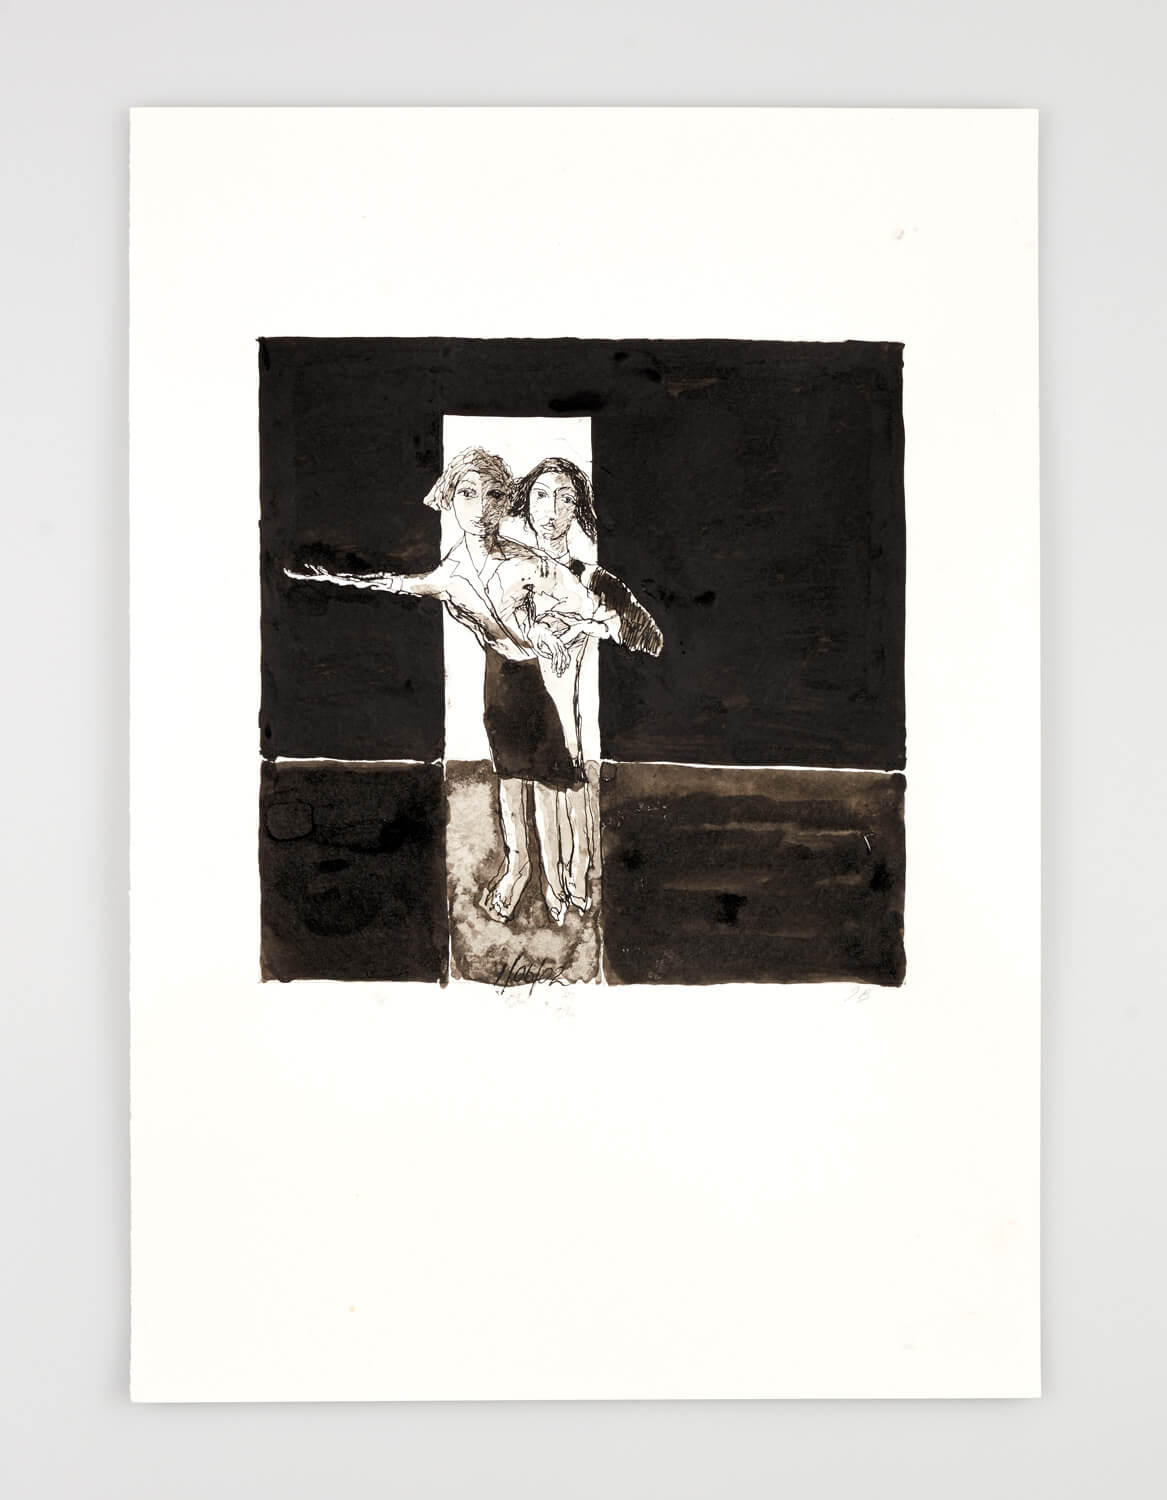 JB079 - Two Women - Being dressed - 2002 - 50 x 35 cm - Indian ink and wash on paper